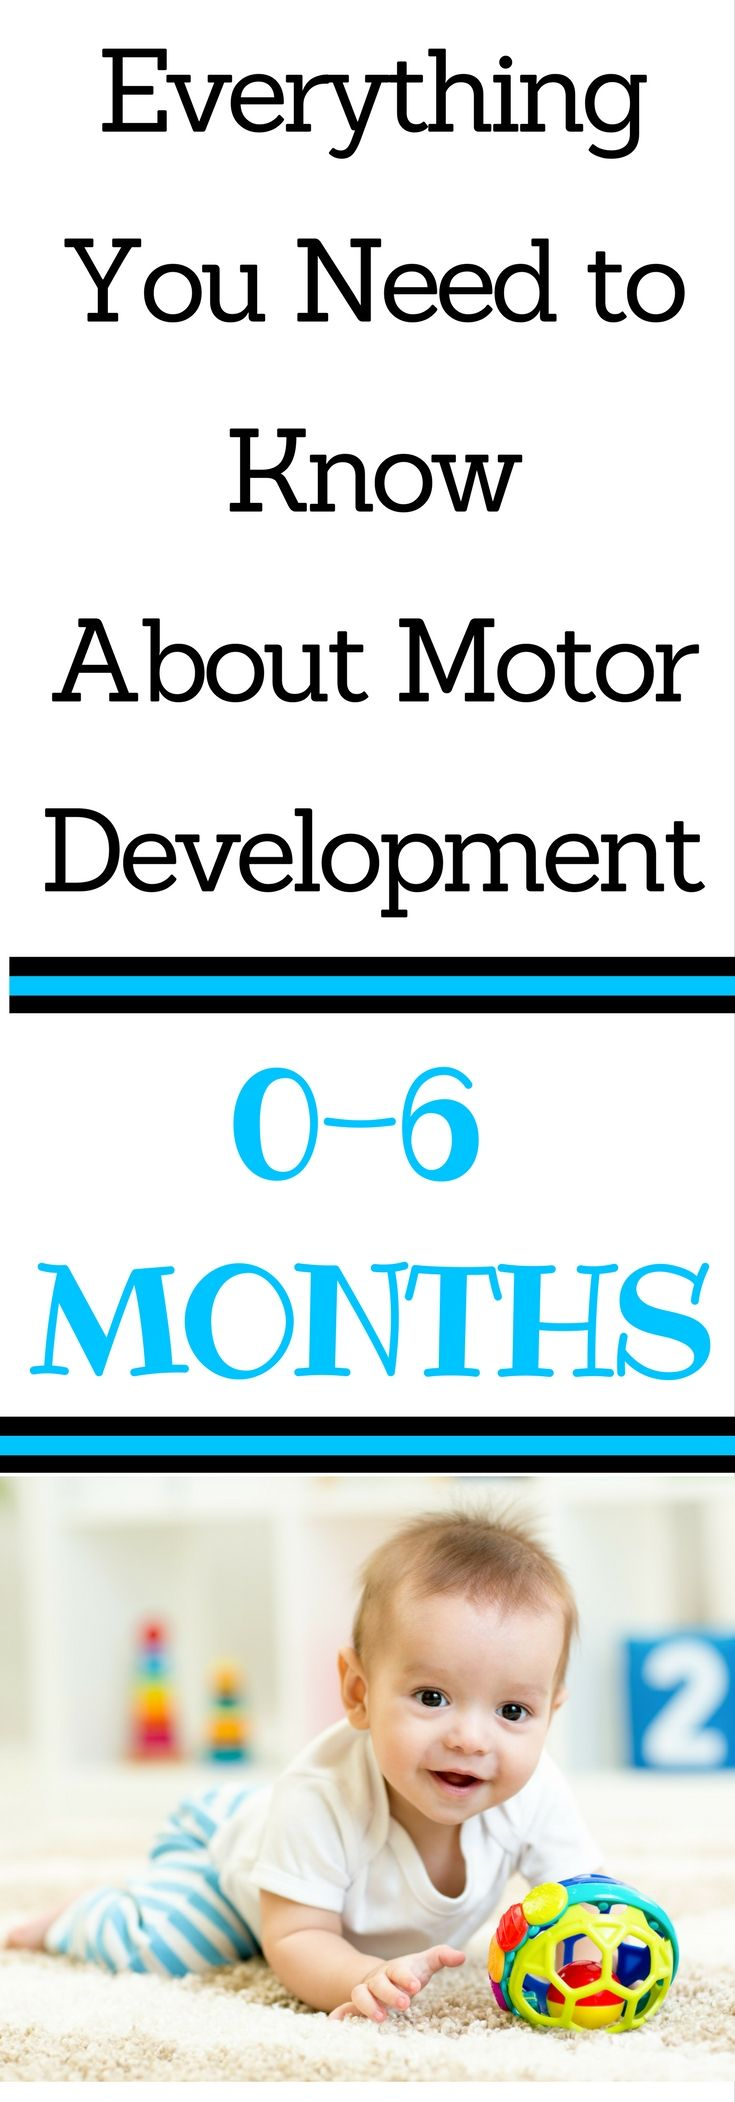 Guide to Gross and Fine Motor Skills: Are you wondering what motor milestones your 0-6 month old baby should have? This complete guide lets you know what skills look like in your infant as well as simple ideas and activities to encourage motor development.